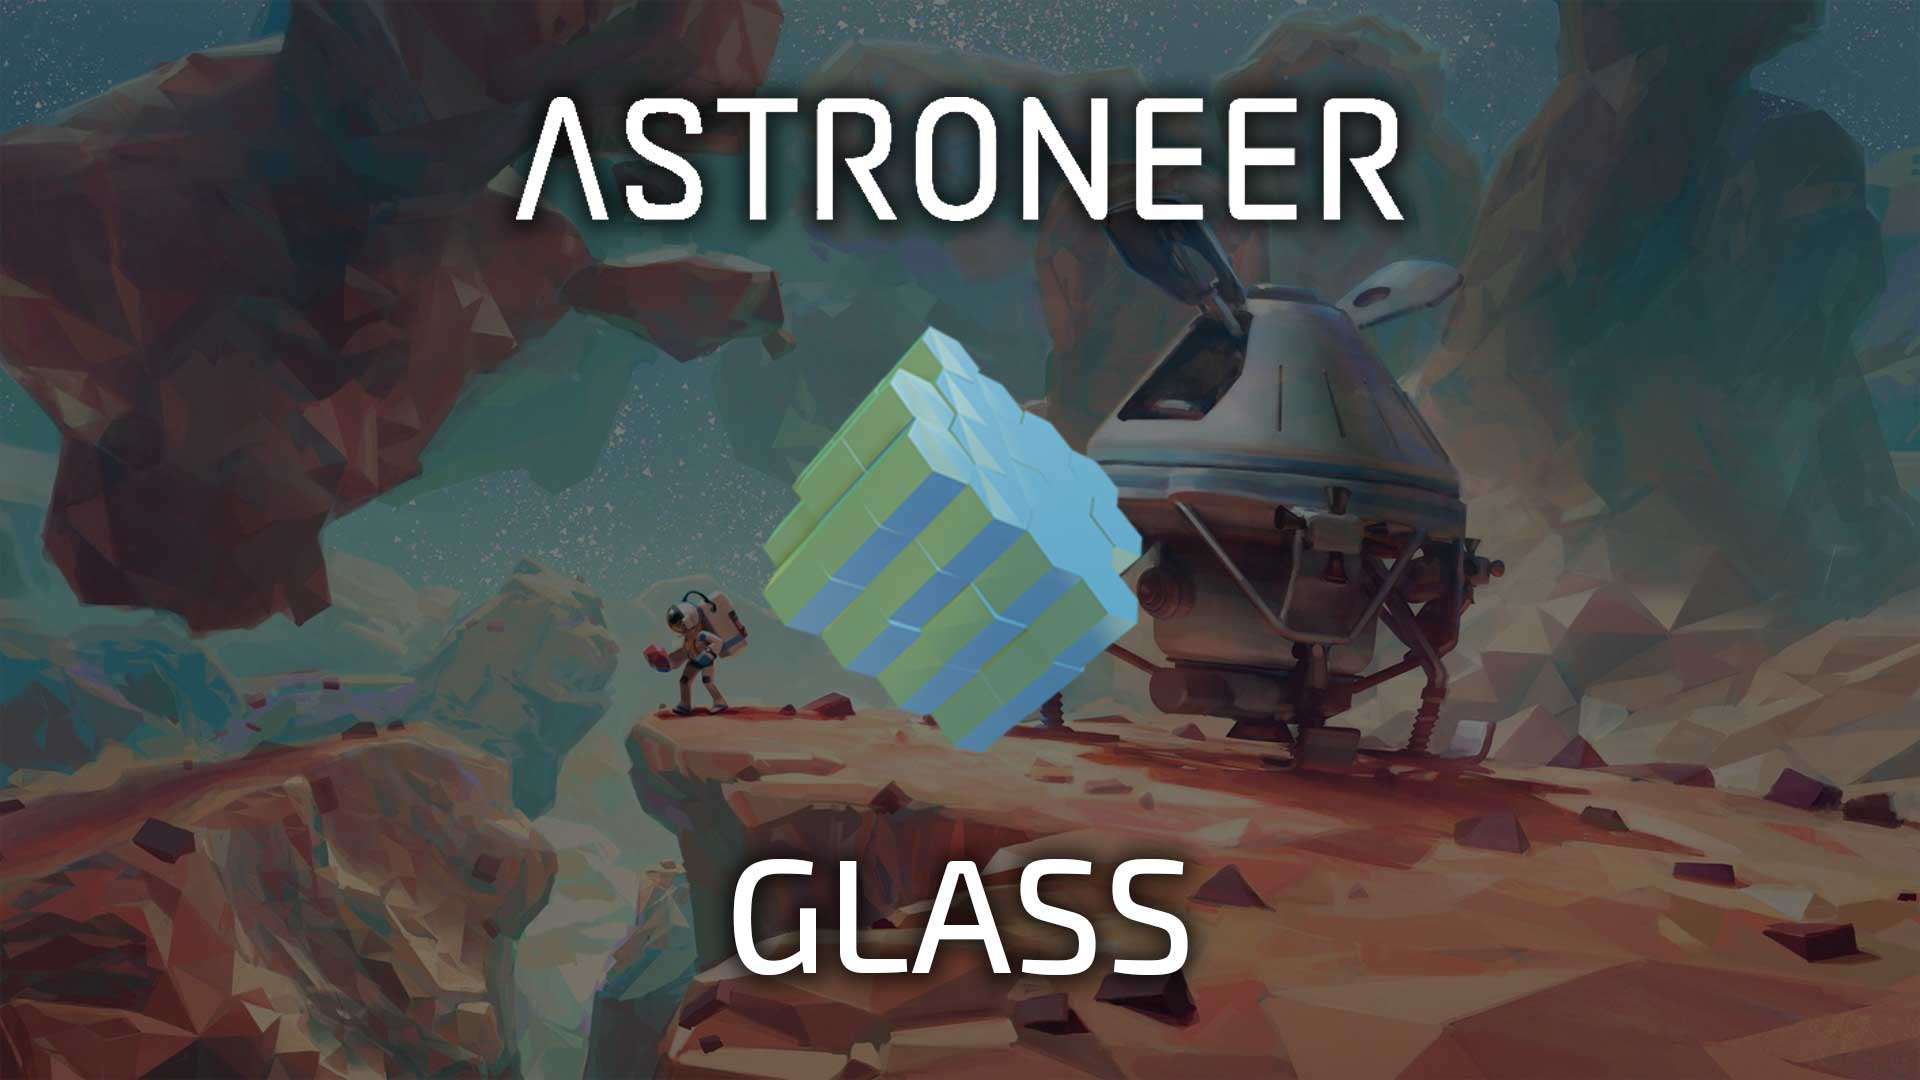 astroneer glass